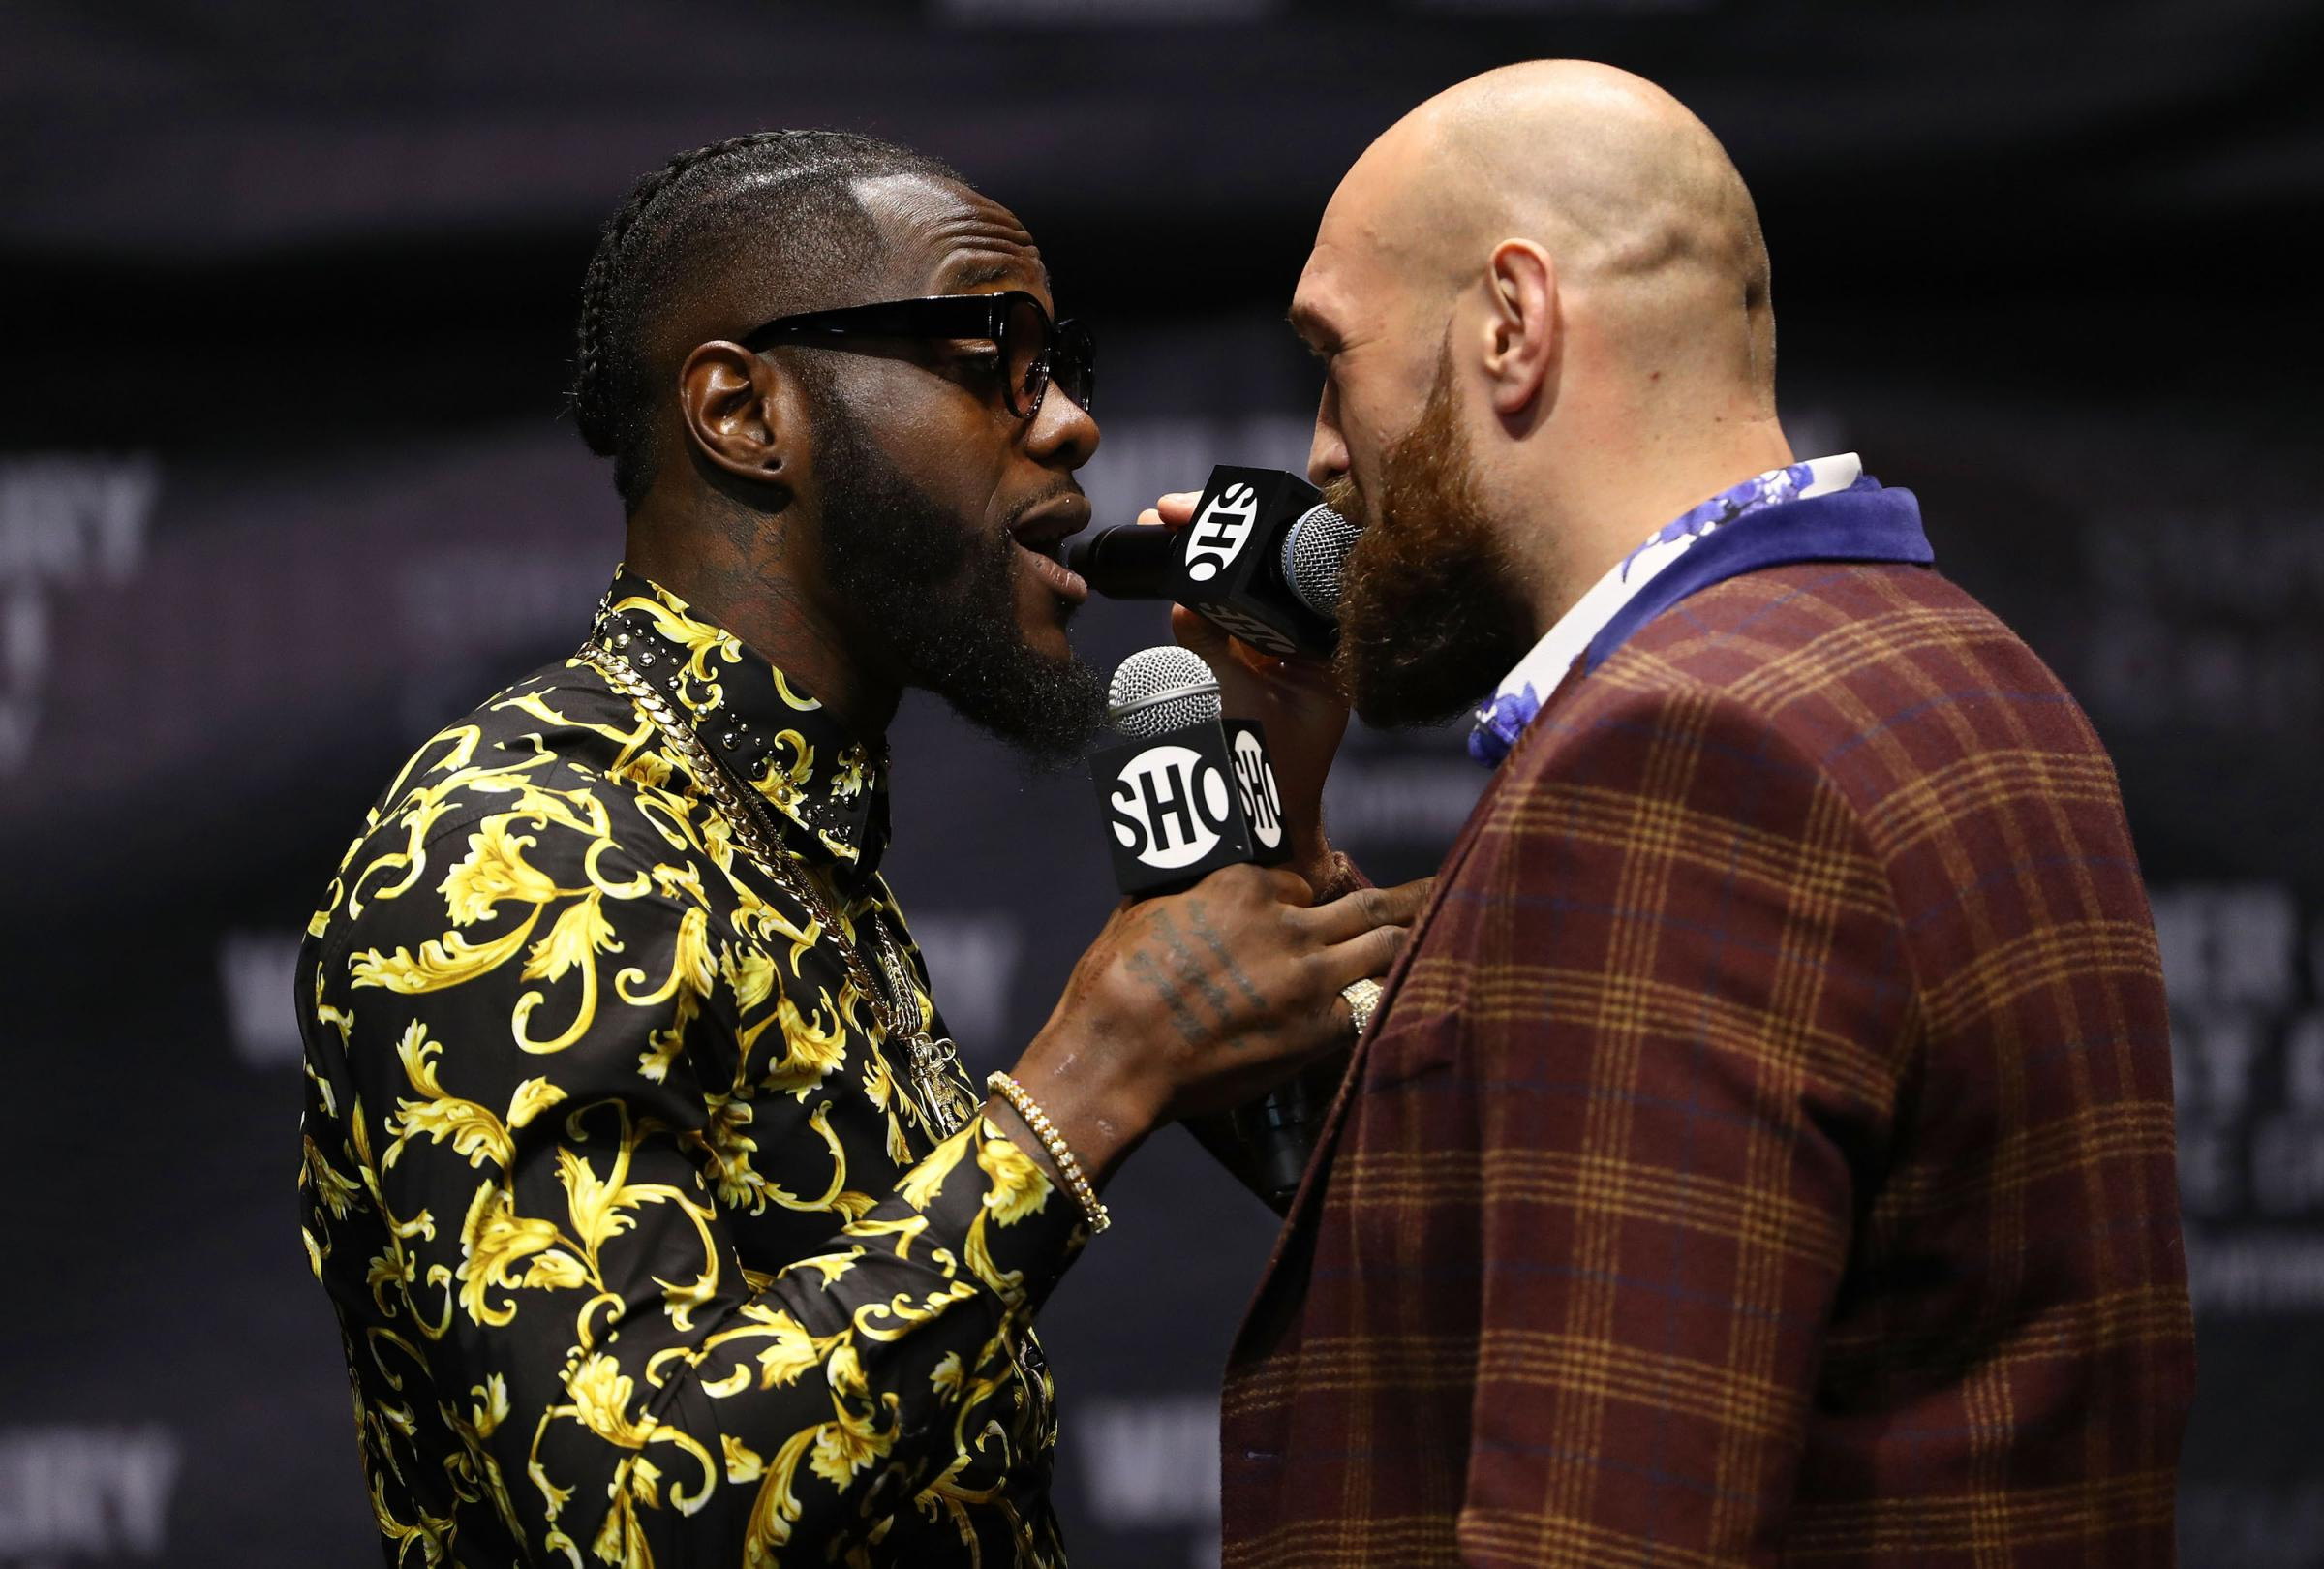 LOS ANGELES, CA - OCTOBER 03:  Professional boxers Deontay Wilder (L) and Tyson Fury speak onstage during their press conference to promote their upcoming December 1, 2018 fight in Los Angeles at The Novo by Microsoft on October 3, 2018 in Los Angeles, Ca